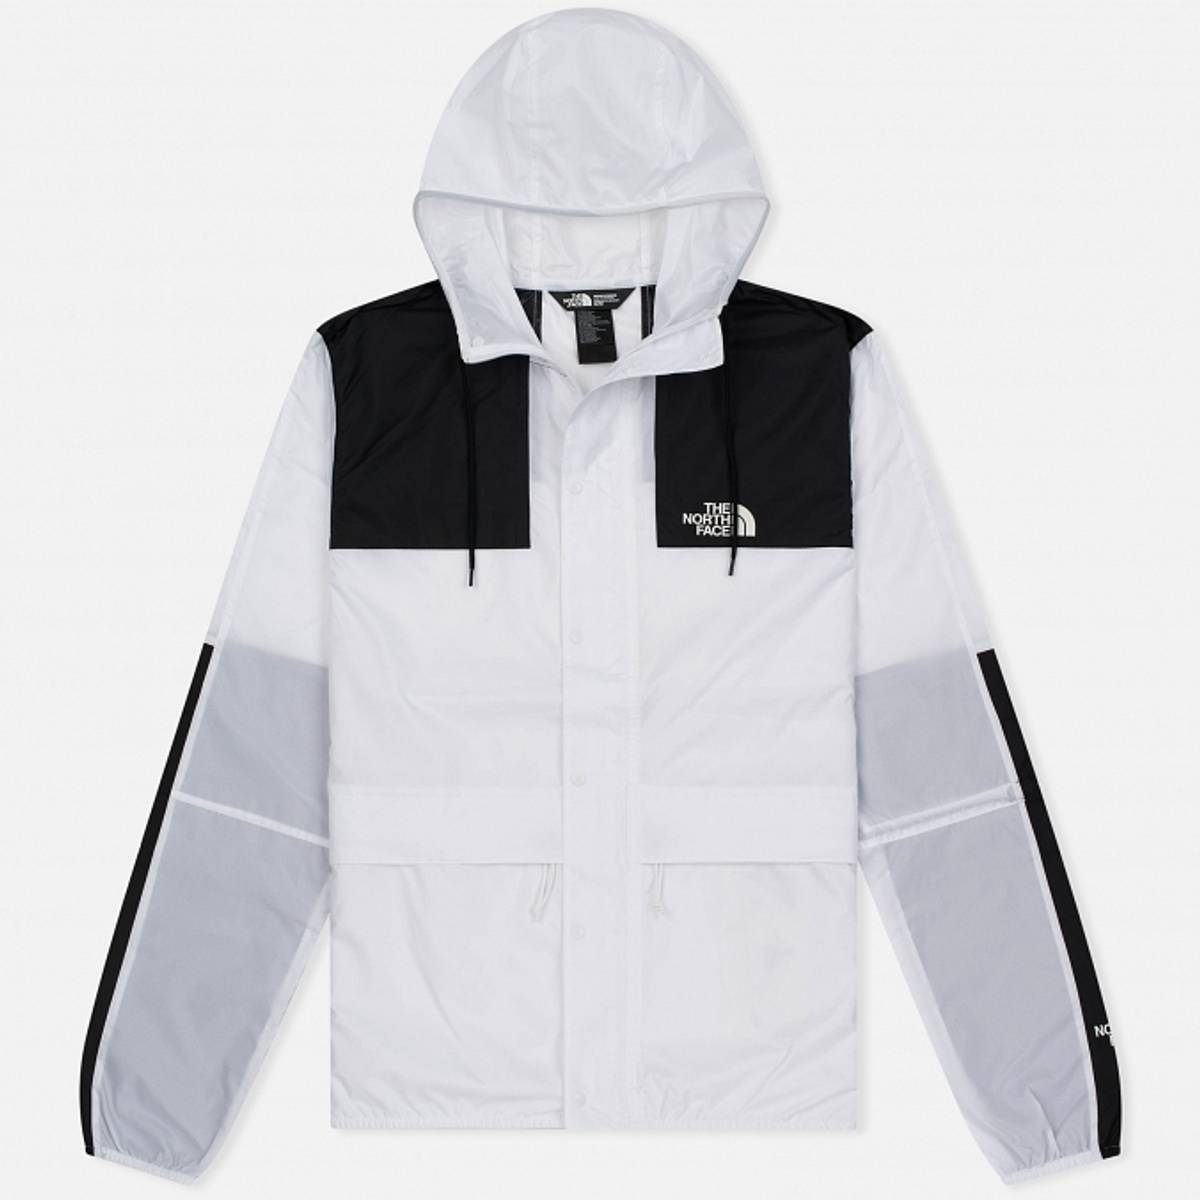 99c18ba042 The North Face The North Face 1985 Seasonal Mountain Celebration TNF White  Size m - Light Jackets for Sale - Grailed